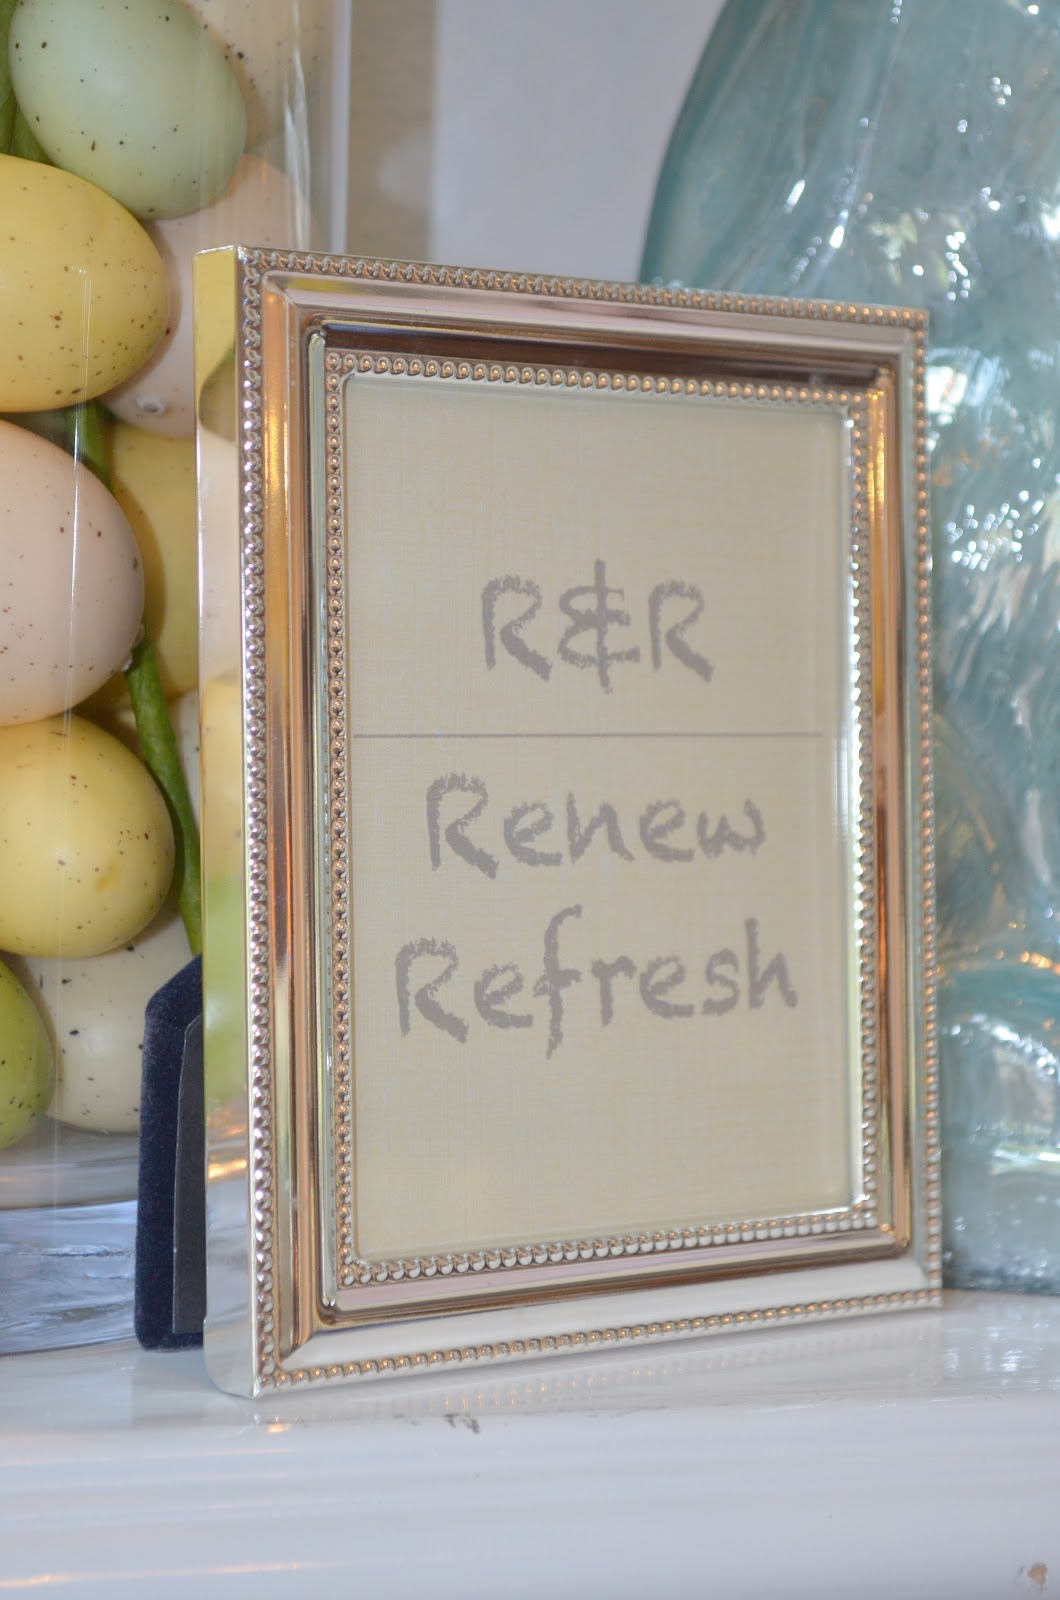 Decor]ography: R&R - Renew and Refresh for Spring